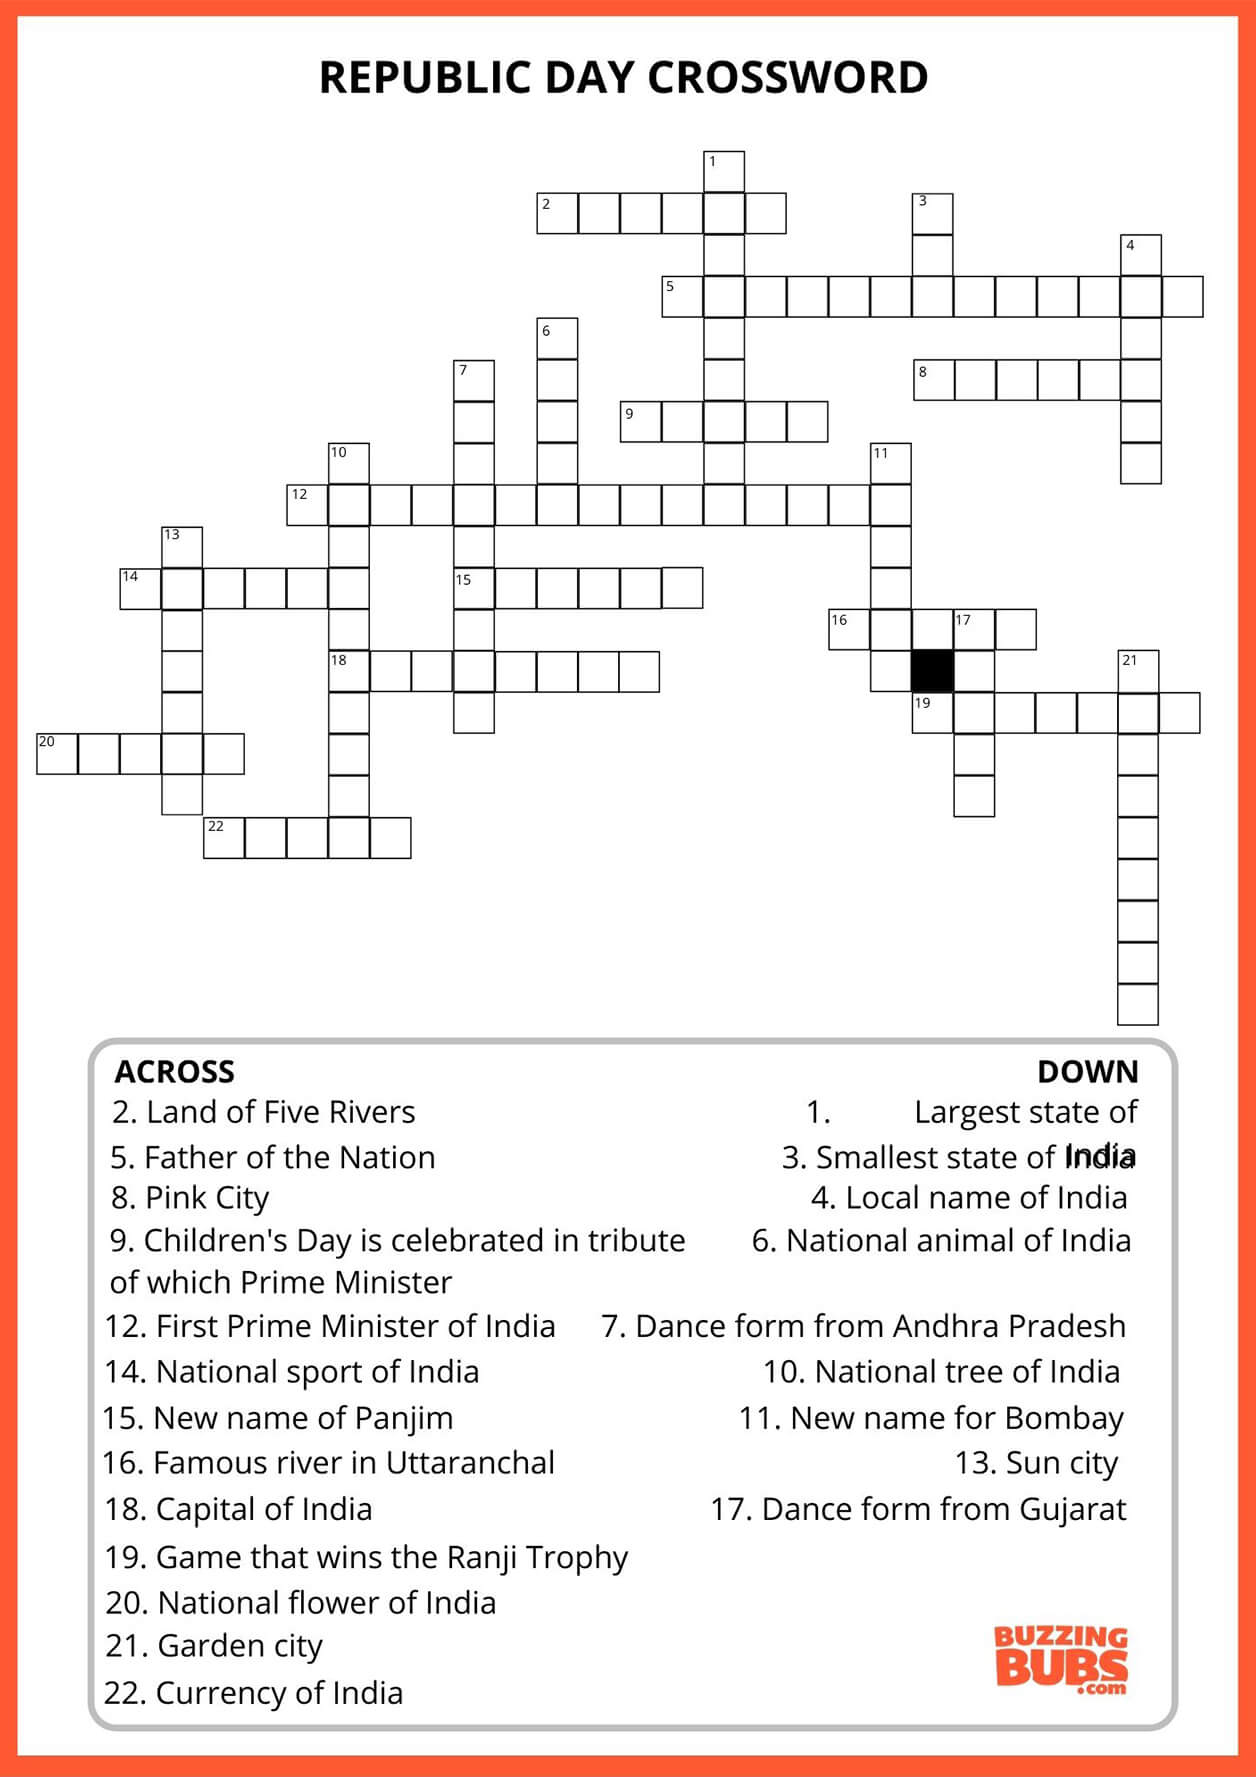 BB_republic_day_crossword01 Cover Image